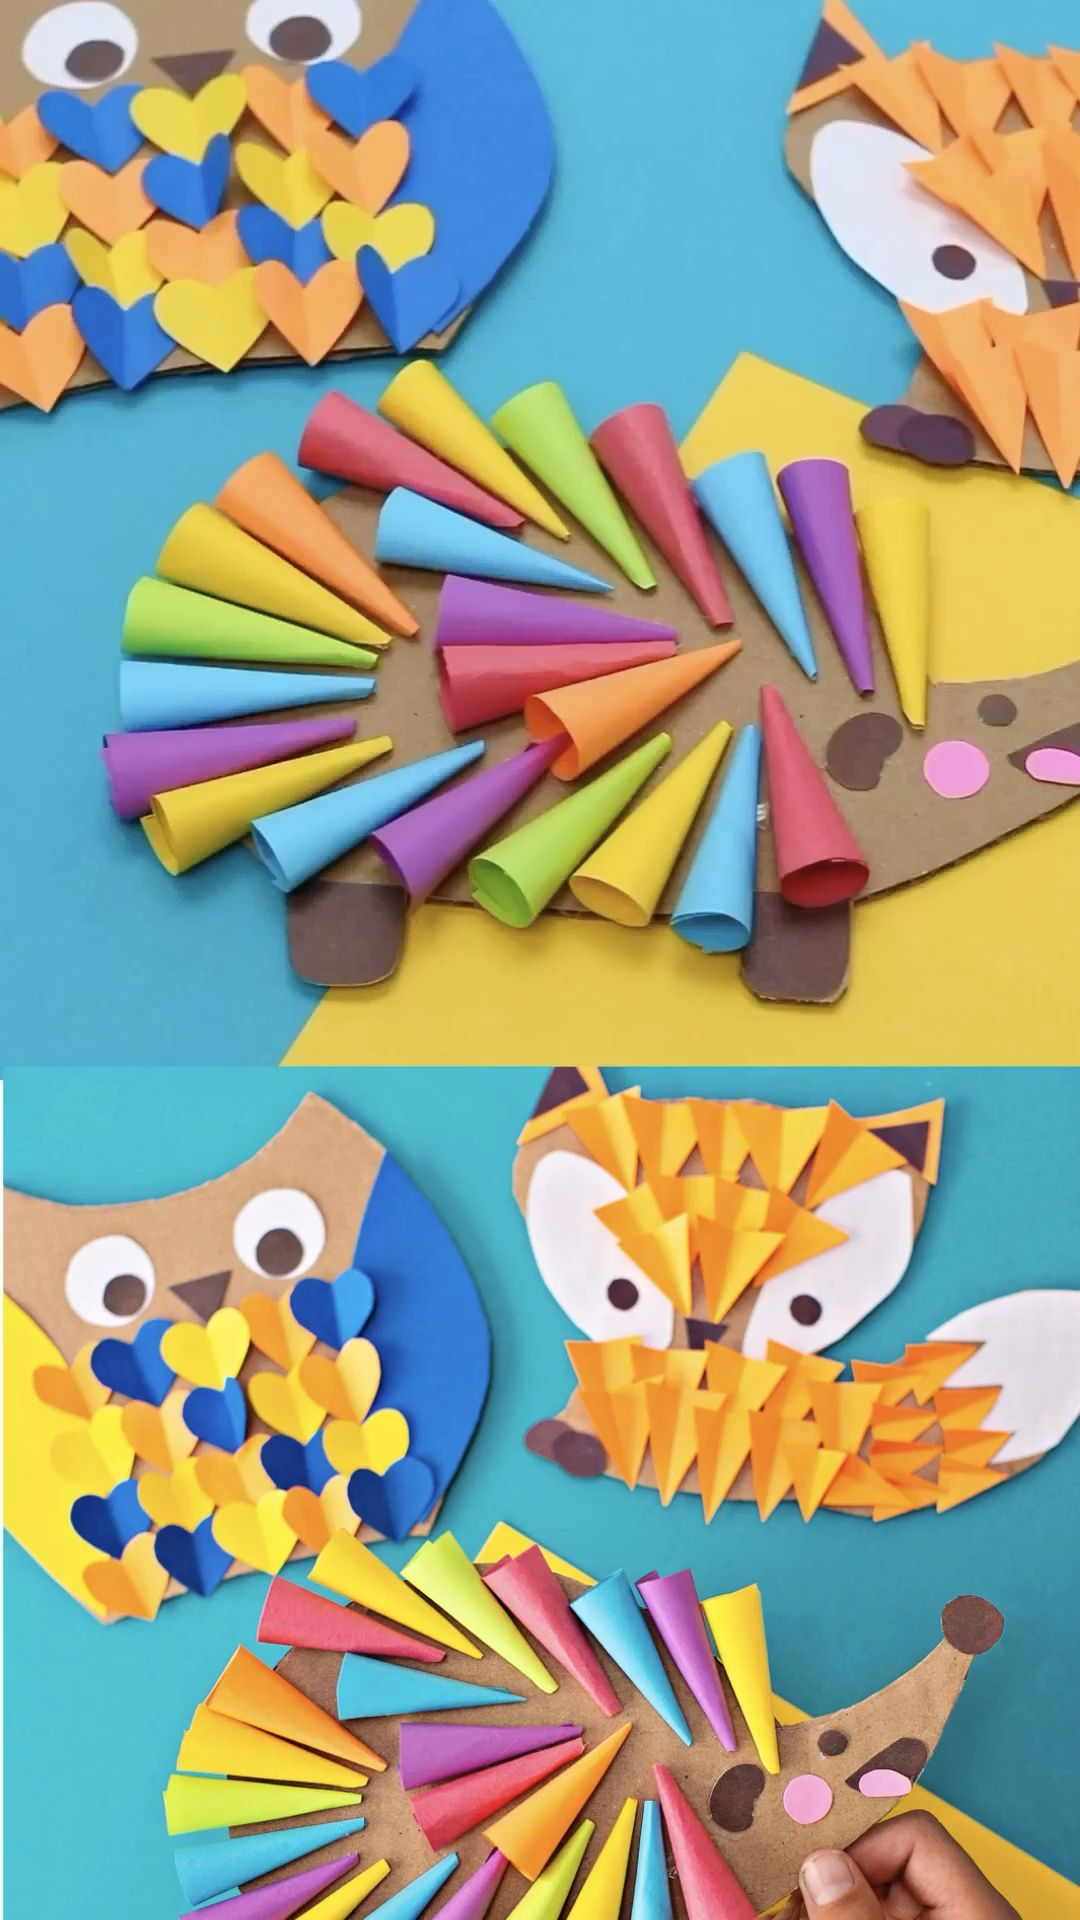 CARDBOARD OWL FOX HEDGEHOG WOODLAND ANIMAL CRAFT. Cute recycled kids craft and art. #hellowonderful